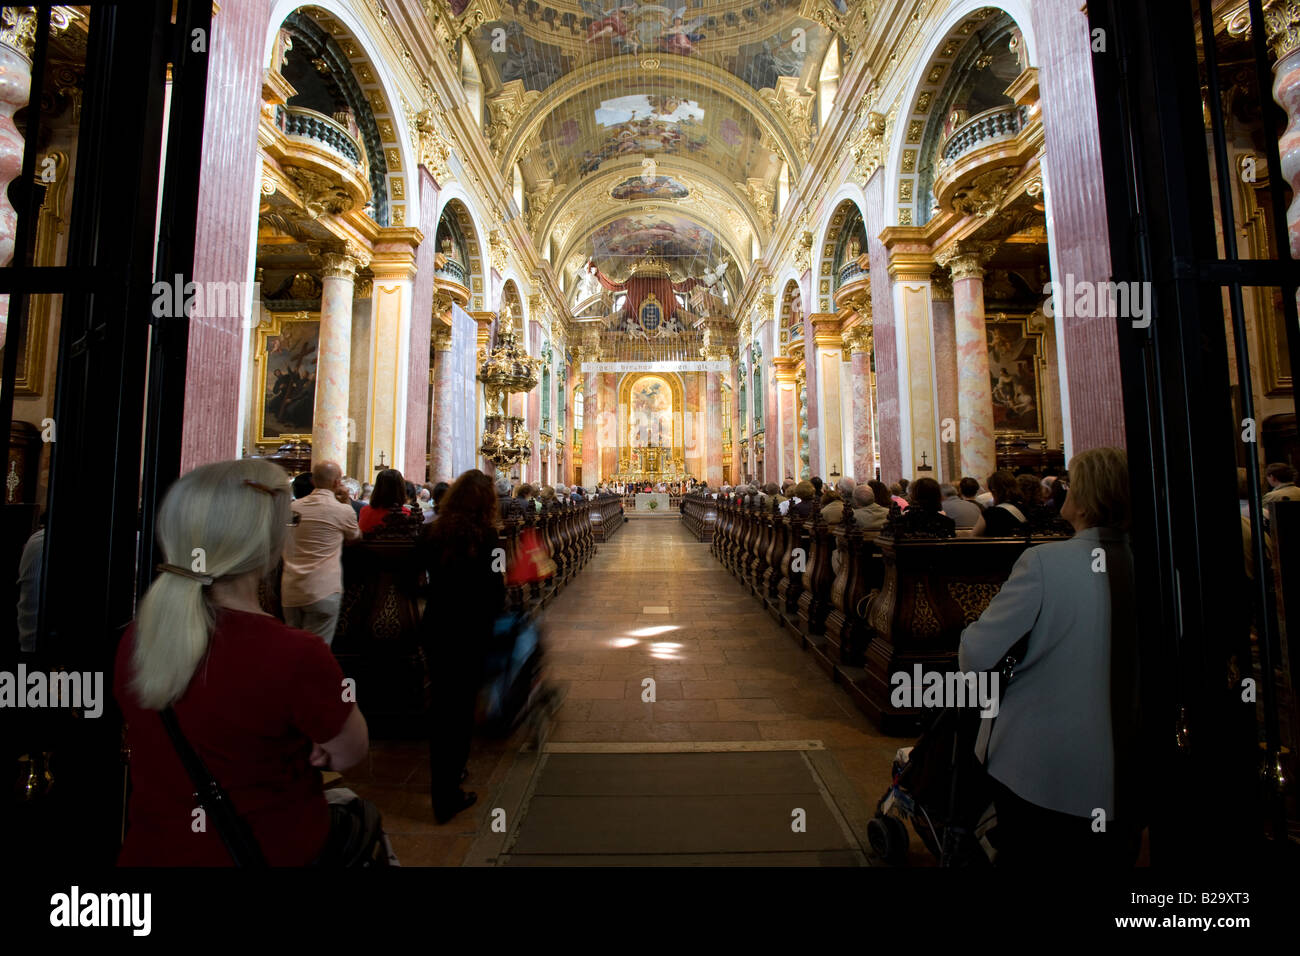 Congregation inside the 17thC Jesuit Church Vienna Austria.  Also known as the Church of the Franciscan Order - Stock Image